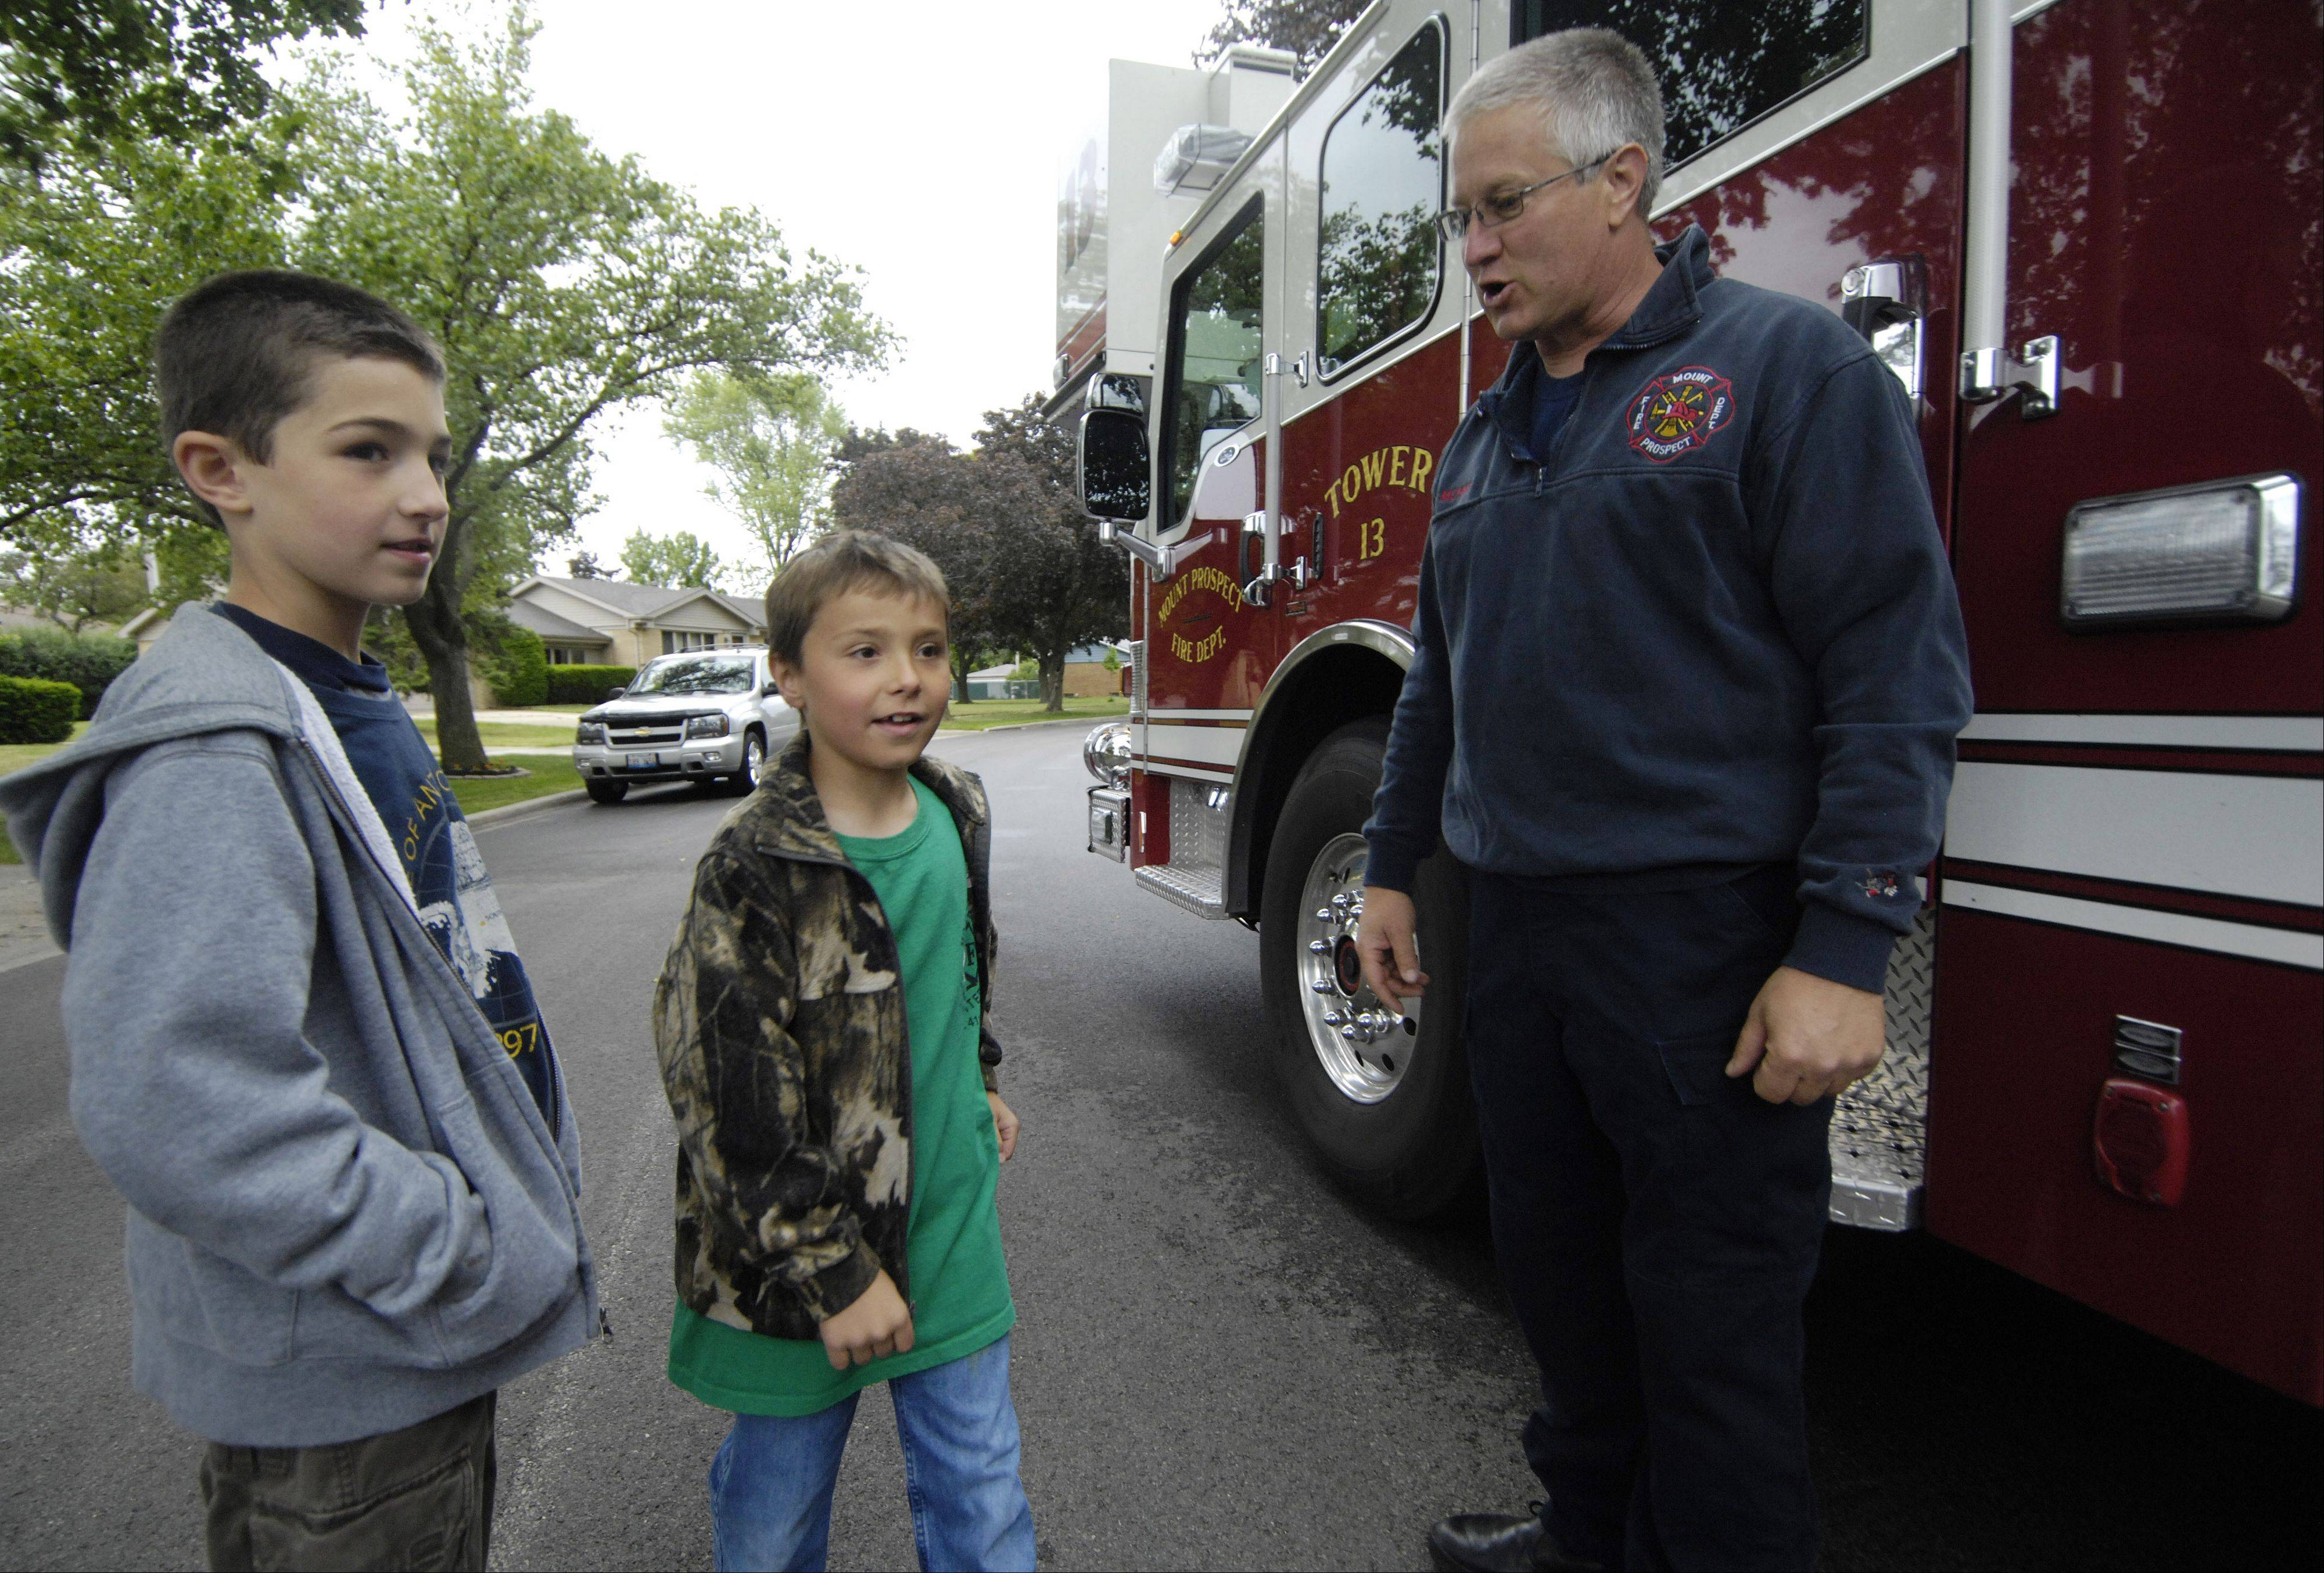 Firefighter/paramedic Pete Morris shows second-graders Carter Jedras, center, and his friend Bryce Tuchner around the engine before the boys get a ride on a fire truck to Fairview Elementary School in Mount Prospect Thursday.